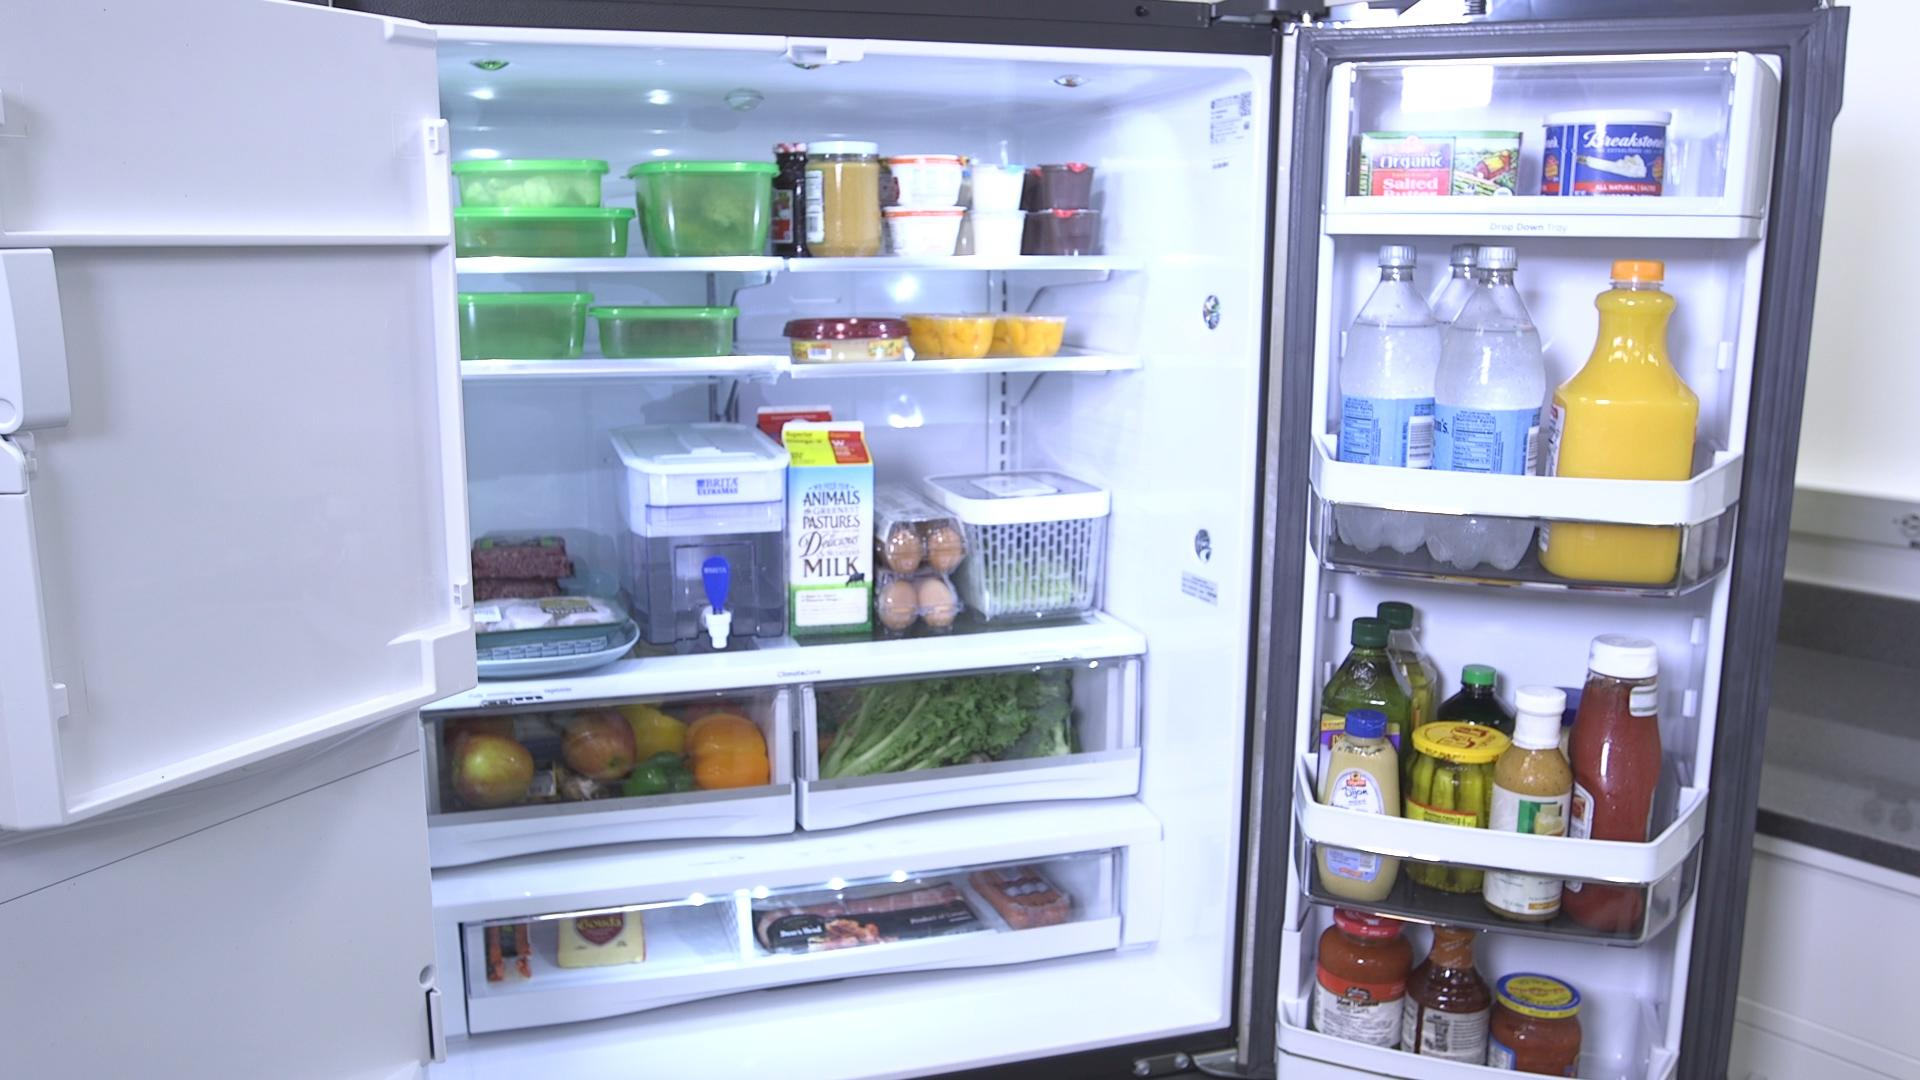 Choosing a fridge: what to look for